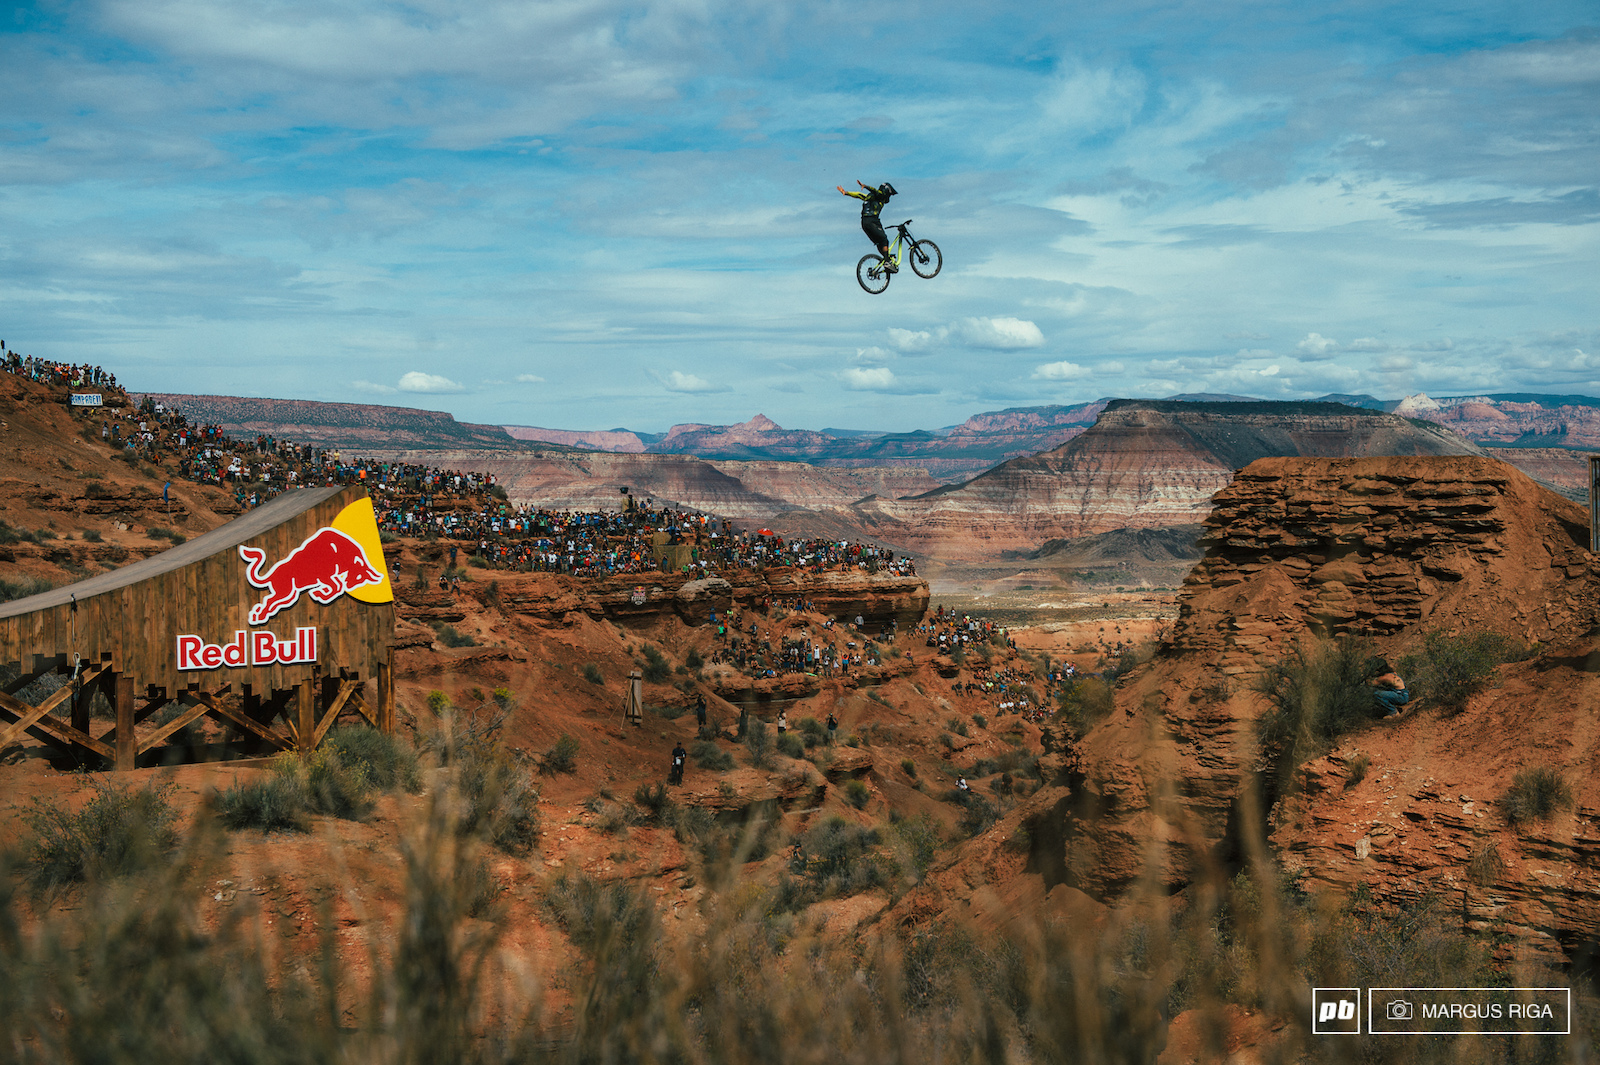 Remi Mettailer had the no-hander over the canyon gap dialled.